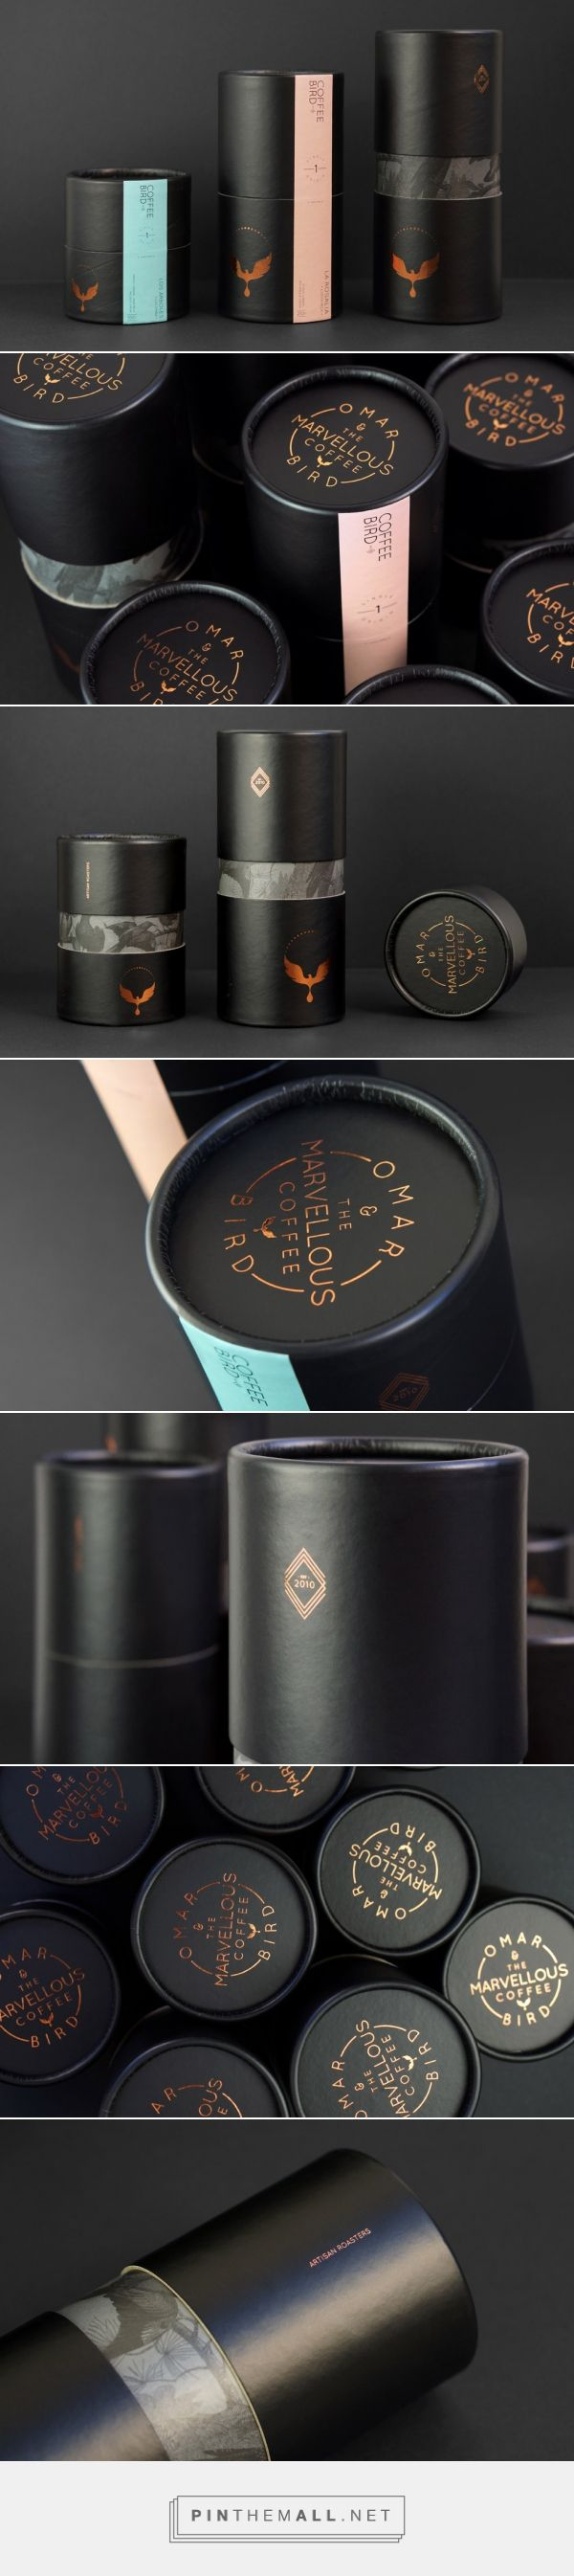 Omar and the Marvellous Coffee Bird Brand Coffee Packaging by Creative Order   Fivestar Branding Agency – Design and Branding Agency & Curated Inspiration Gallery